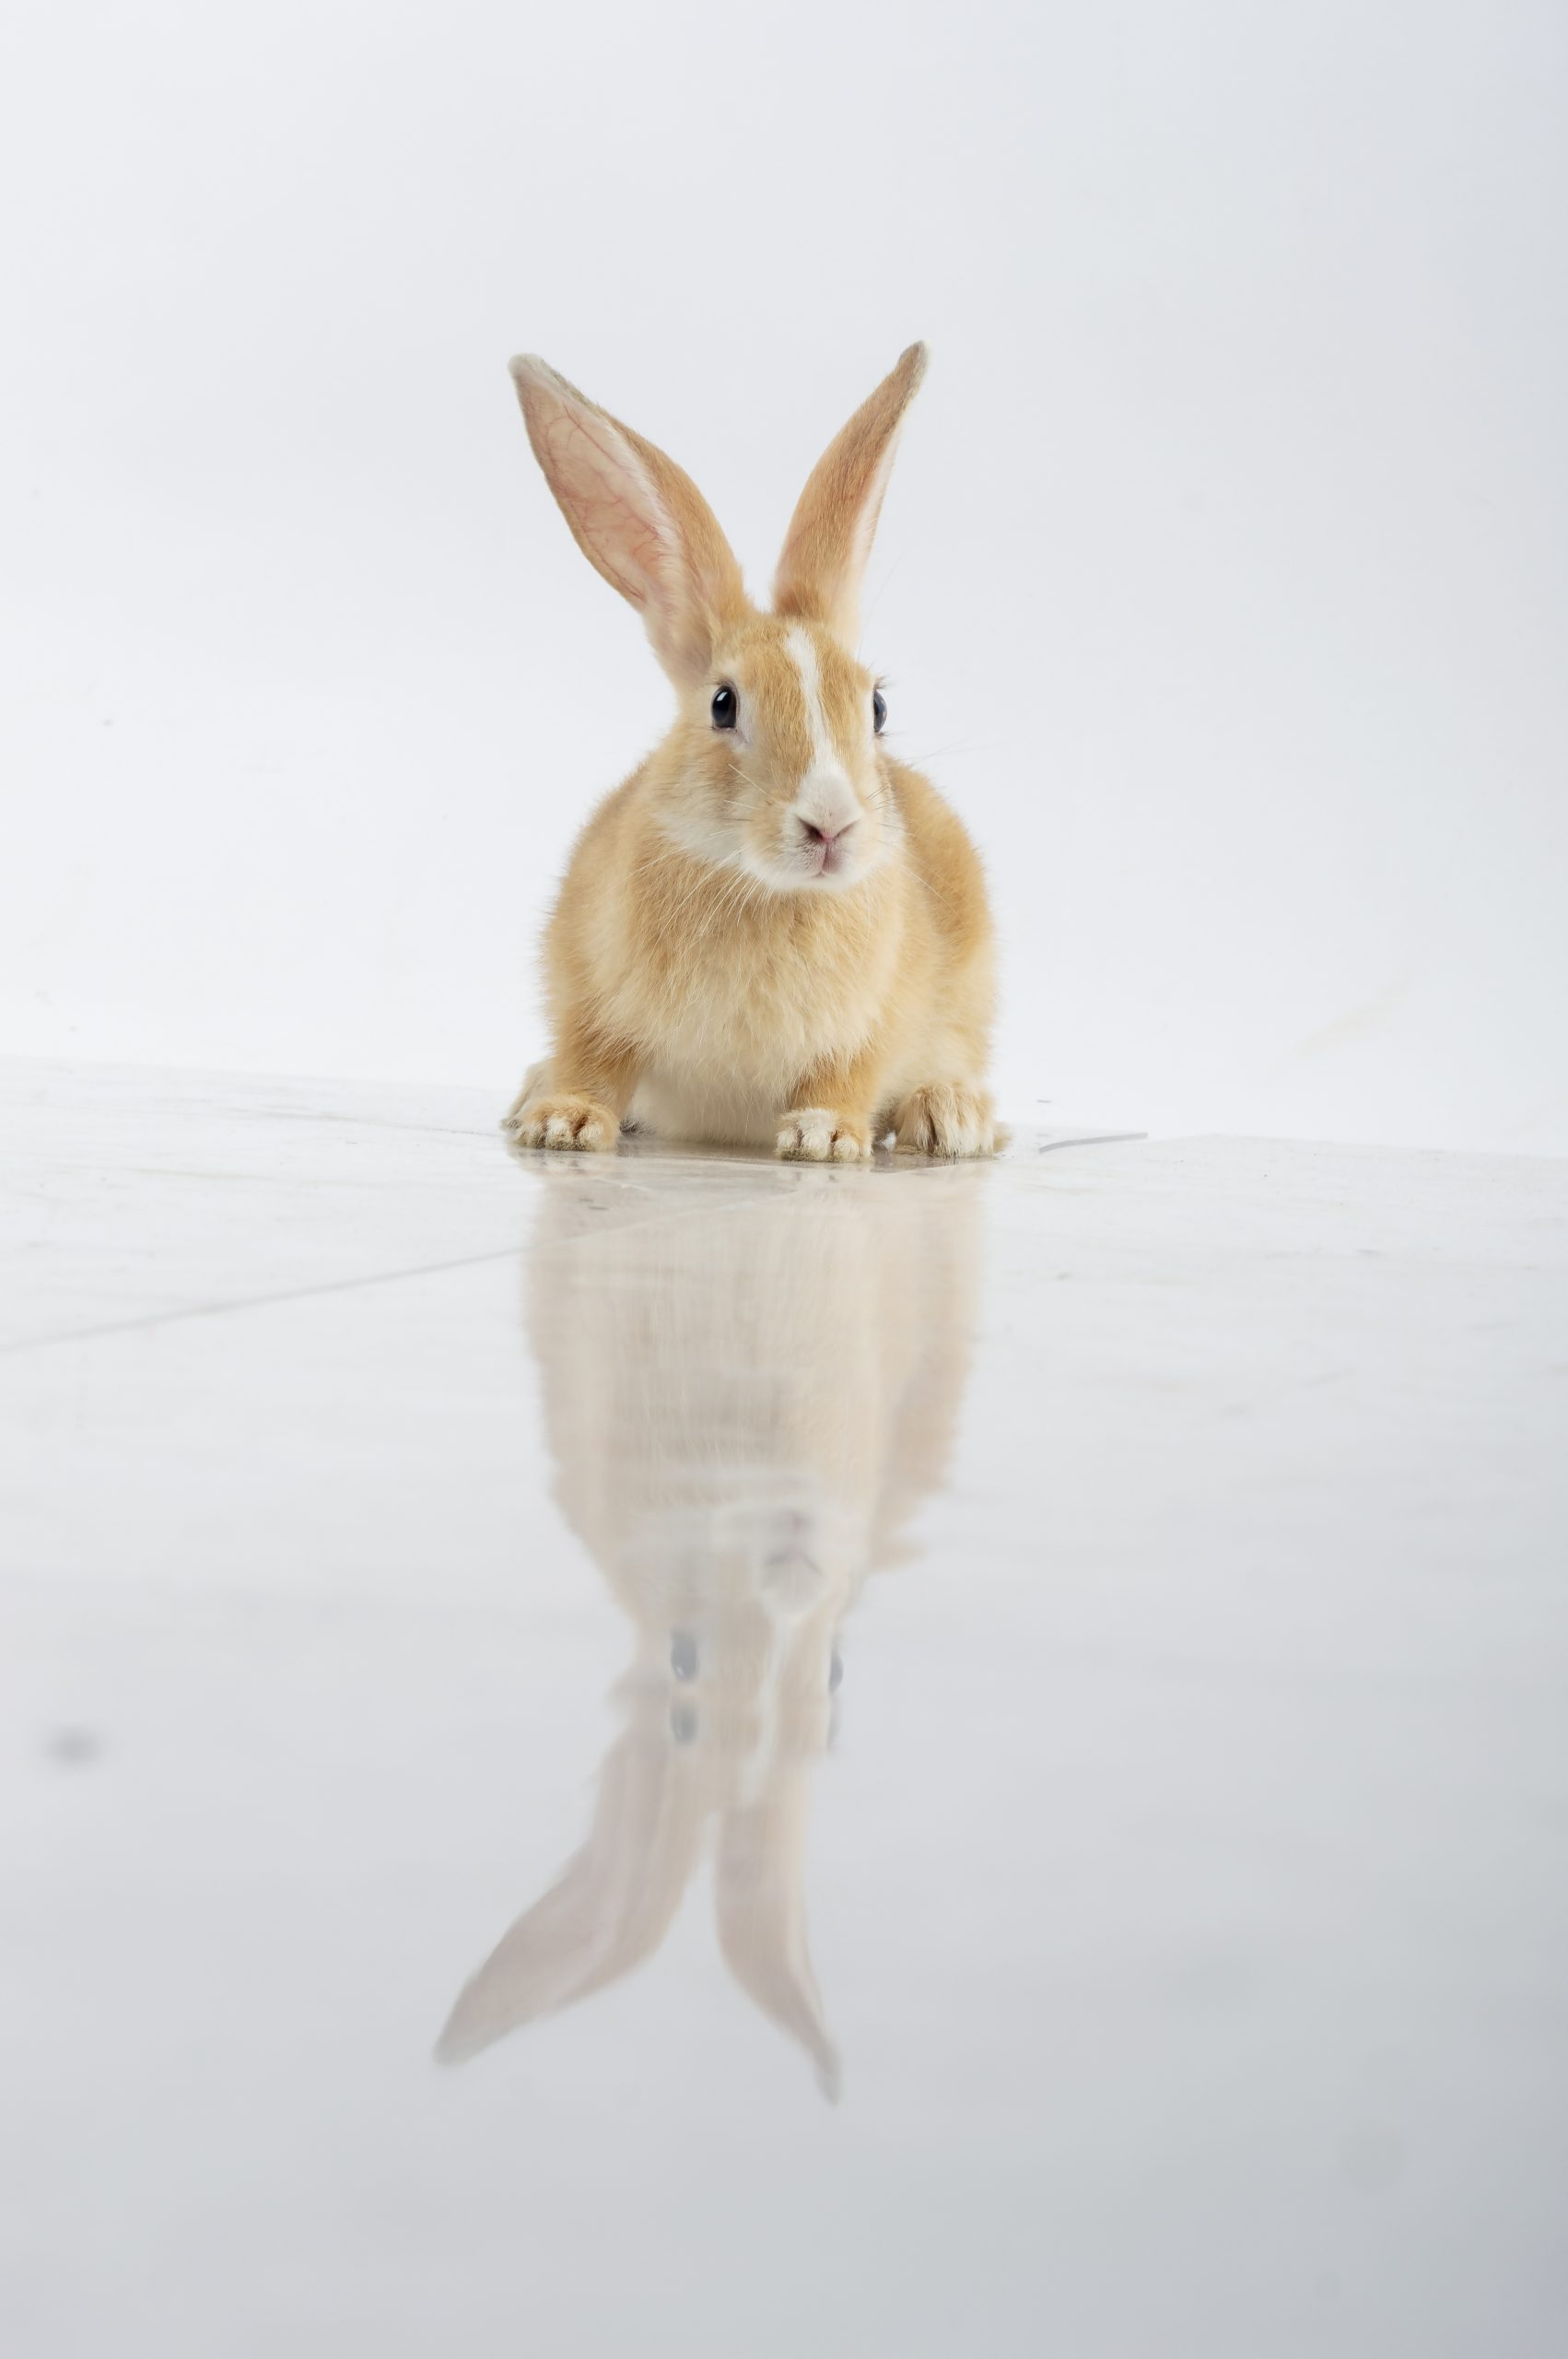 Rabbit and its reflection